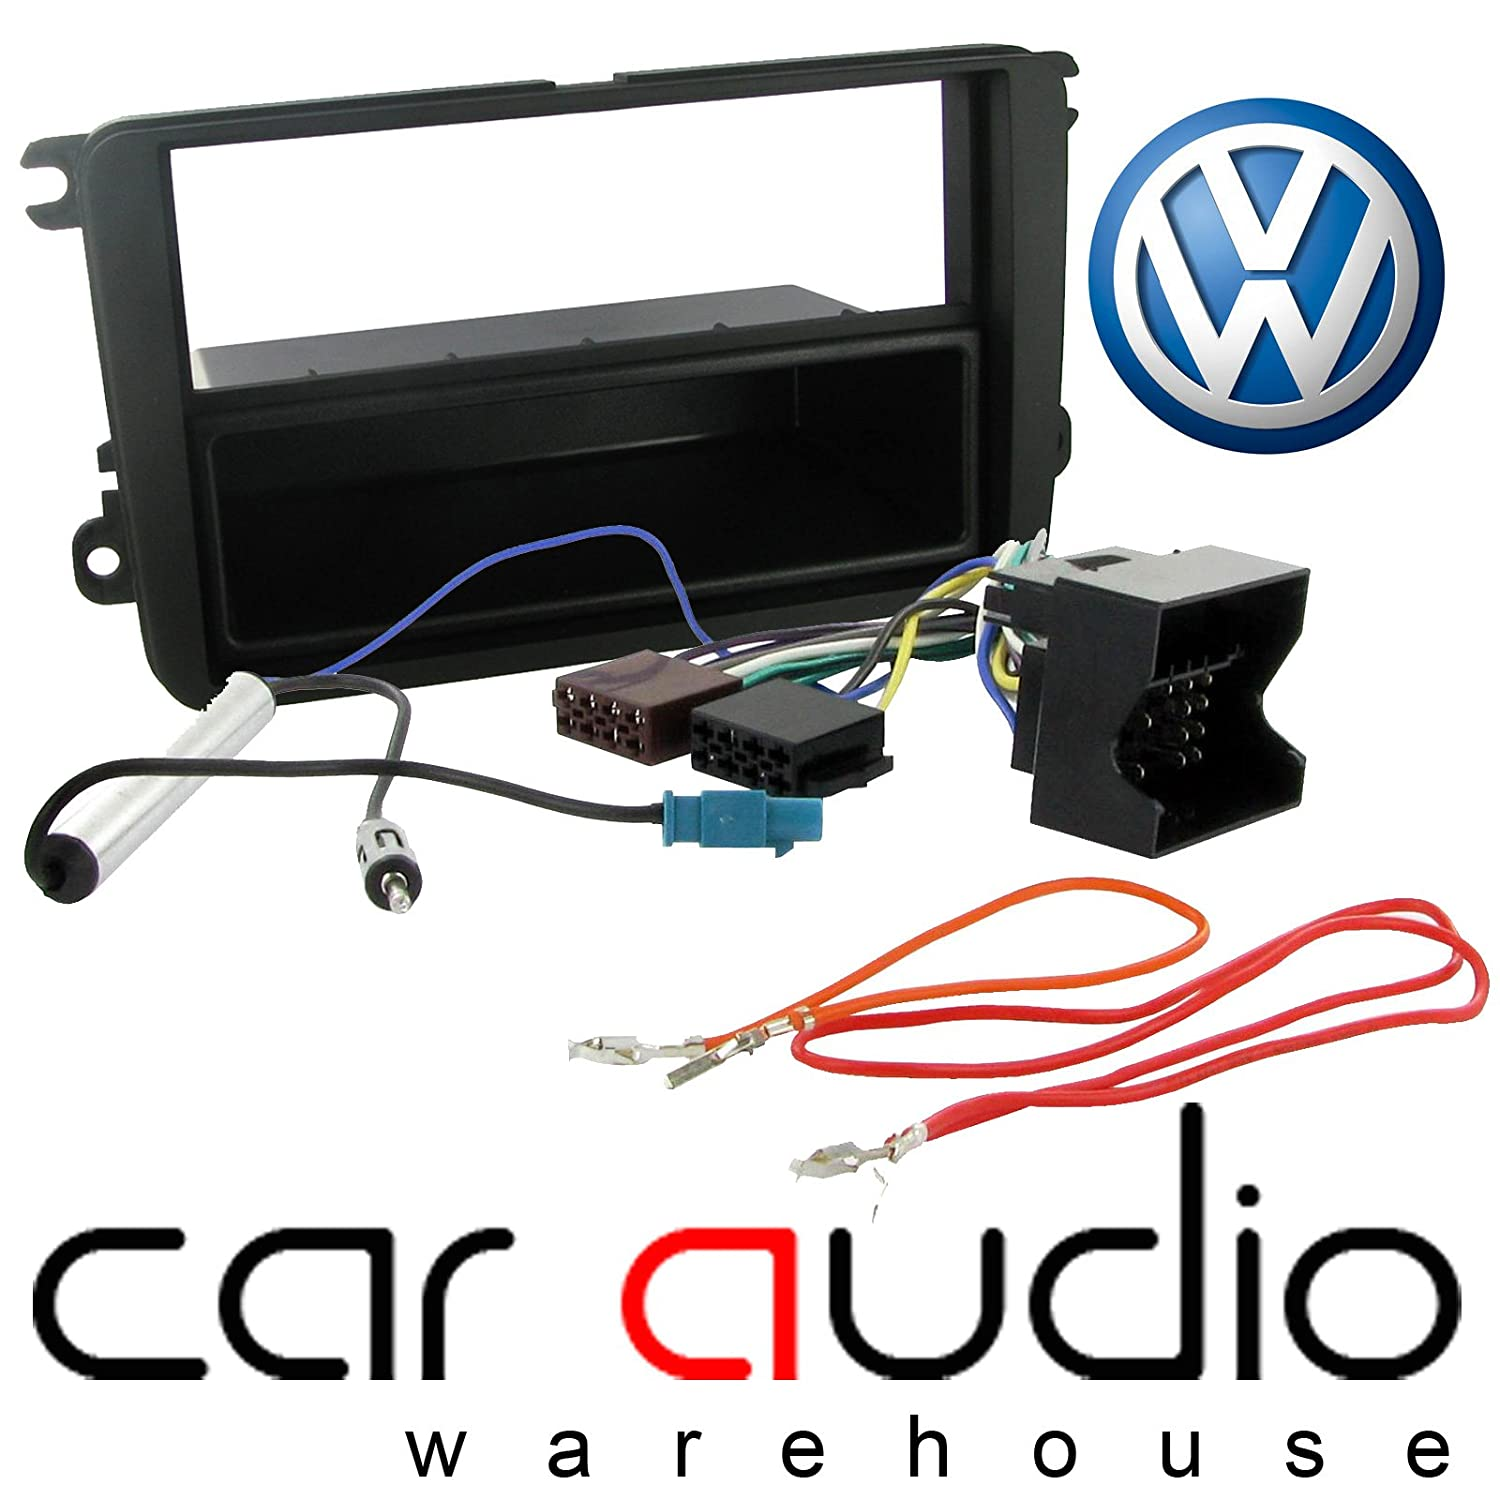 T1 Audio Pack Wiring And Black Facia Panel Fits The Following Vehicles VW Pack